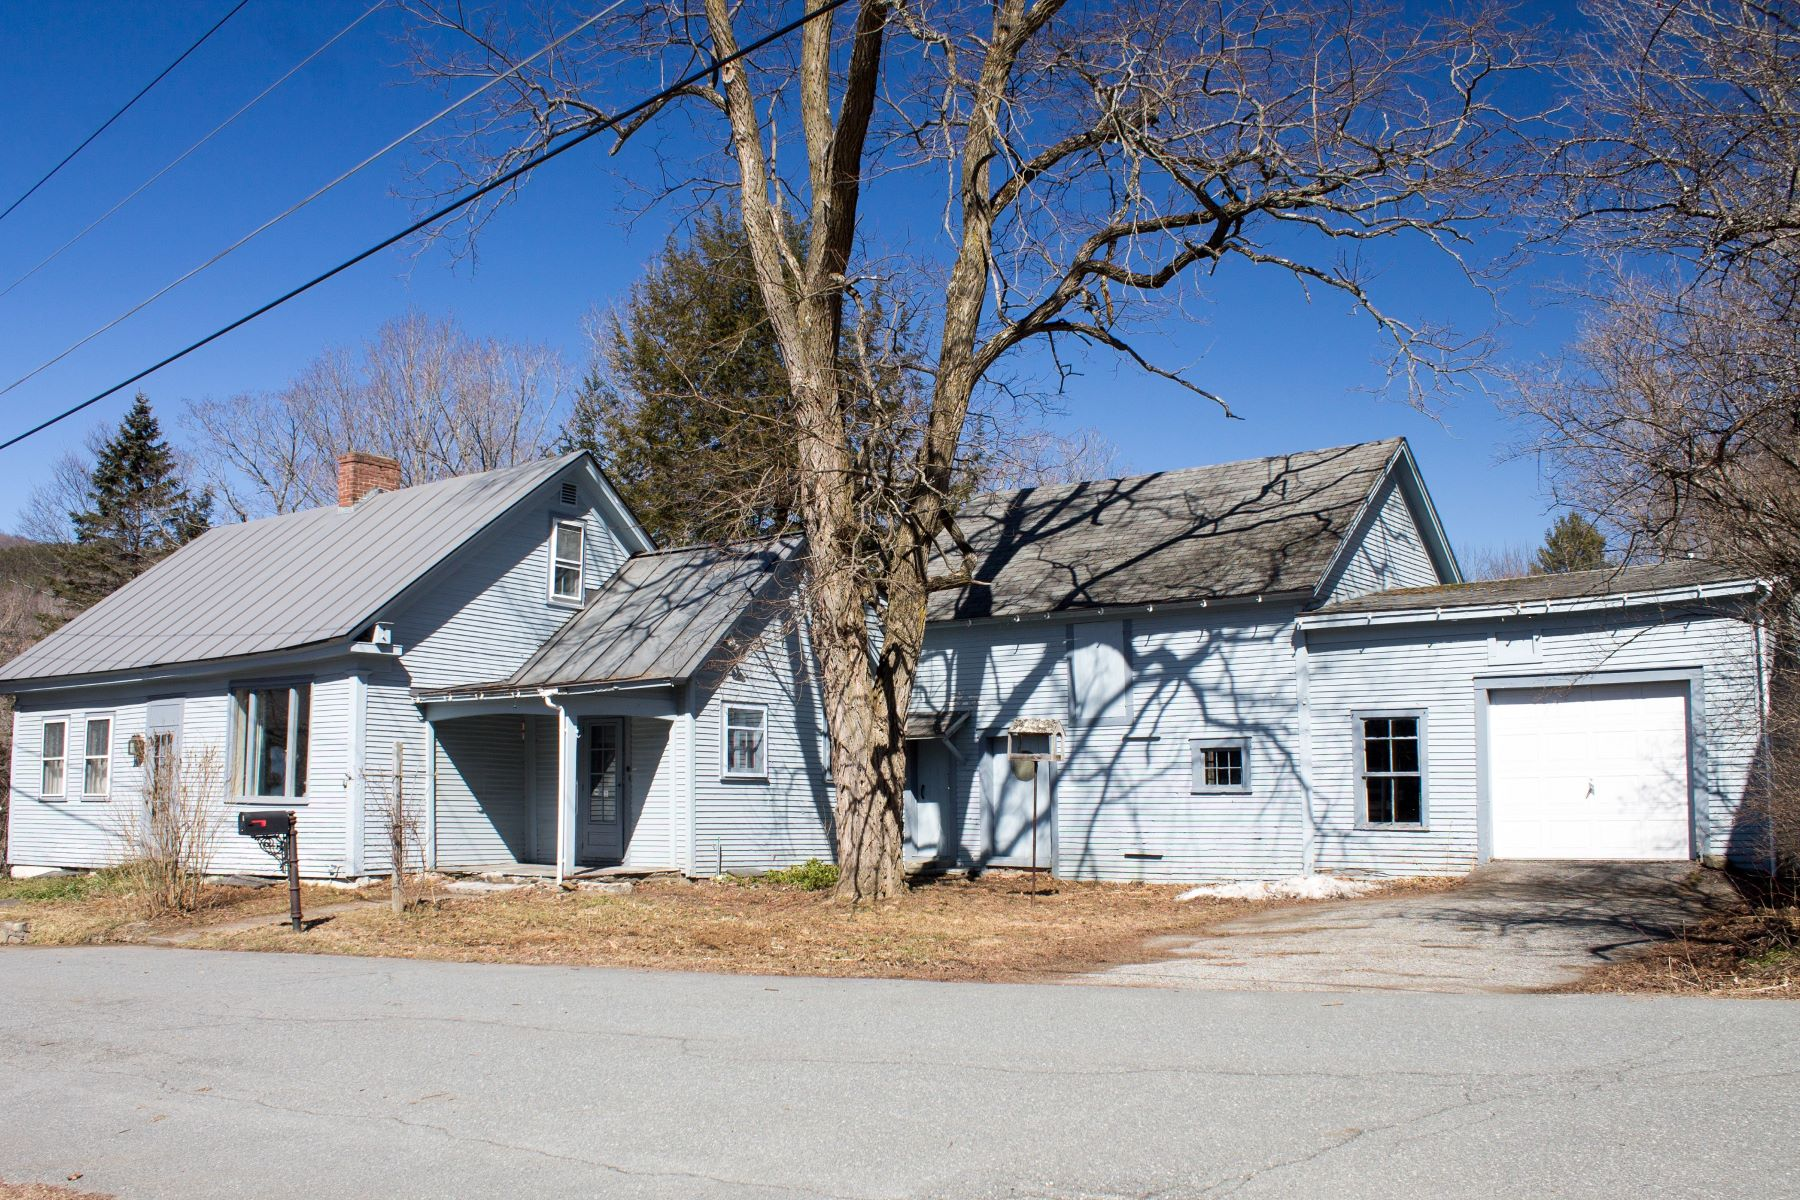 Single Family Homes for Sale at Three Bedroom Cape in Chelsea 9 Highland Avenue Chelsea, Vermont 05038 United States